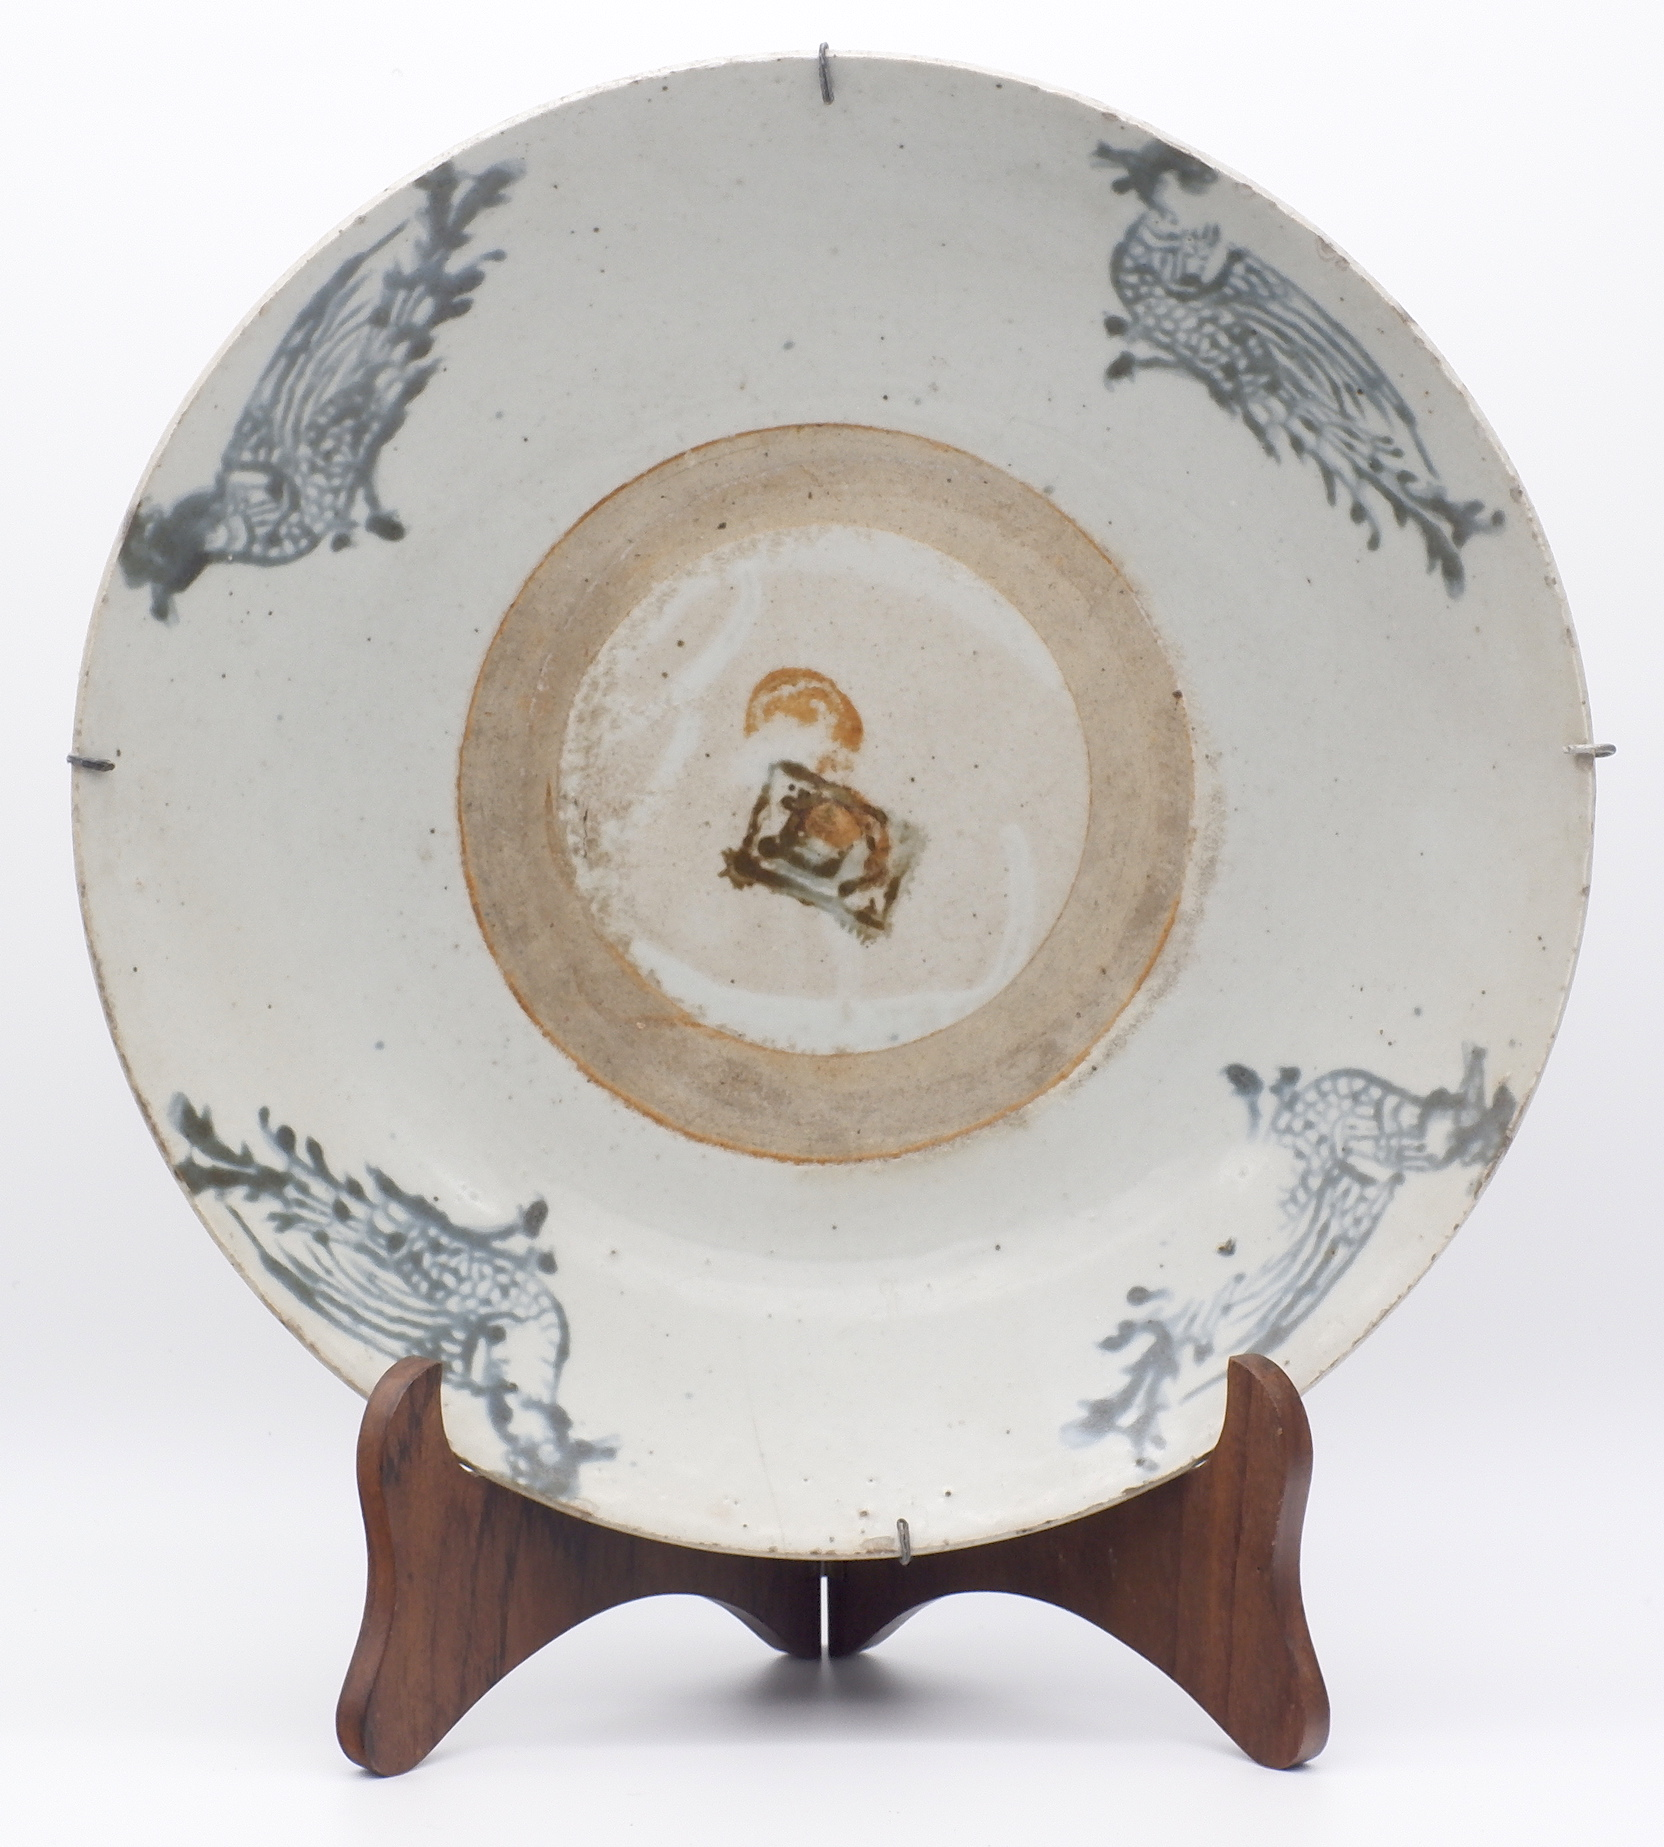 'Large Chinese Fujian Ware Dish with Block Printed Decoration of Birds and Central Character, Early 19th Century'